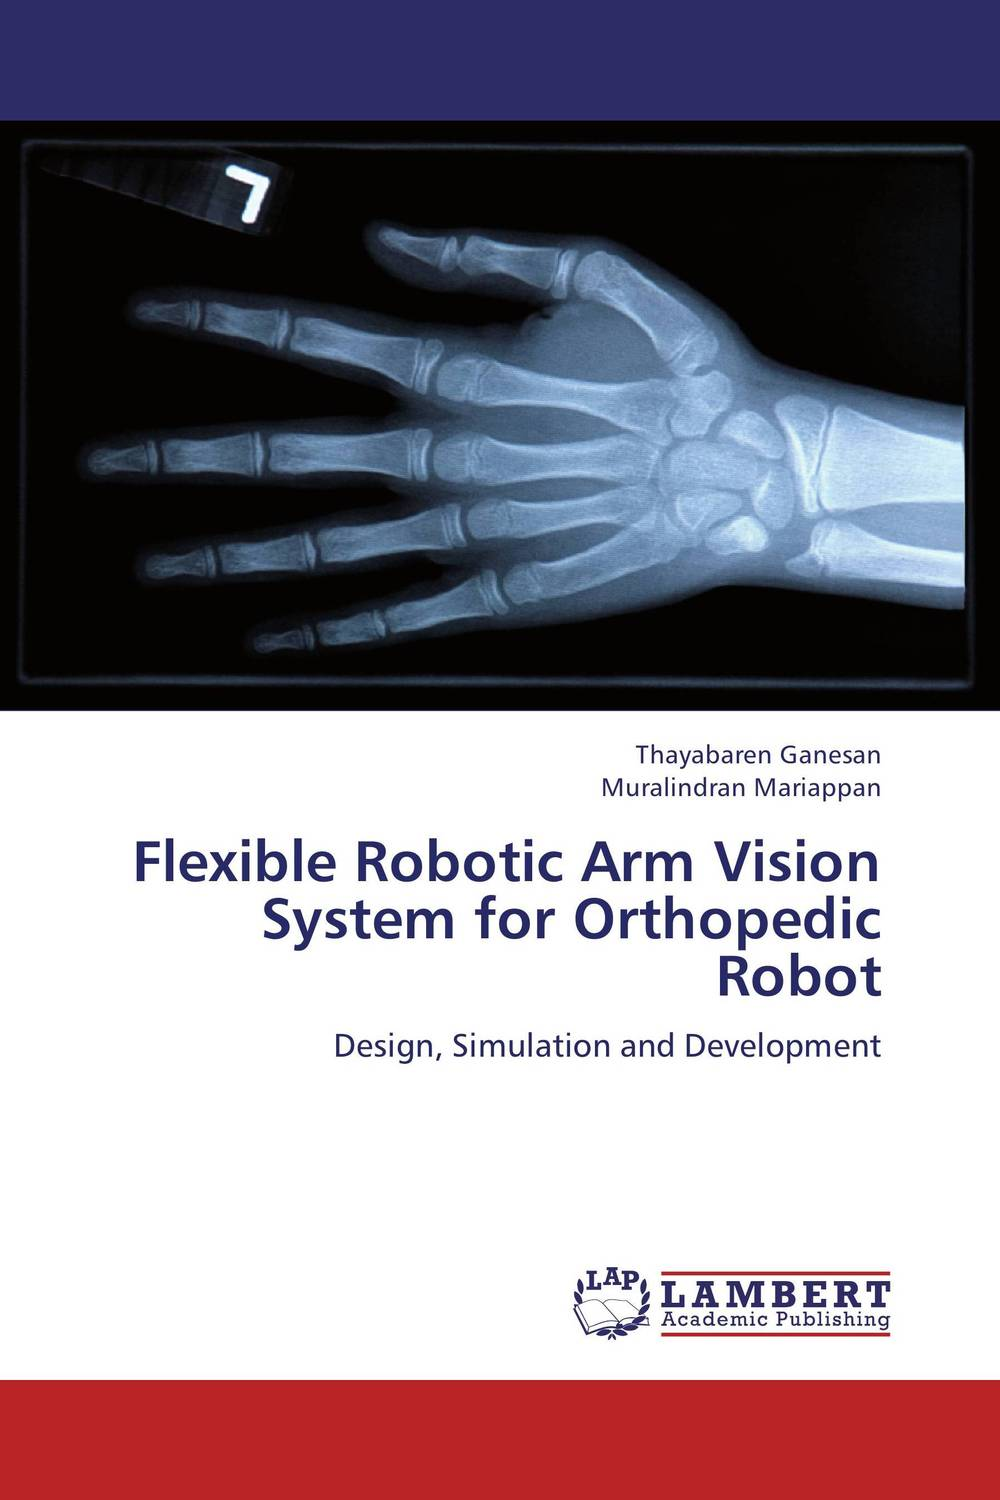 Flexible Robotic Arm Vision System for Orthopedic Robot peter stone layered learning in multiagent systems – a winning approach to robotic soccer